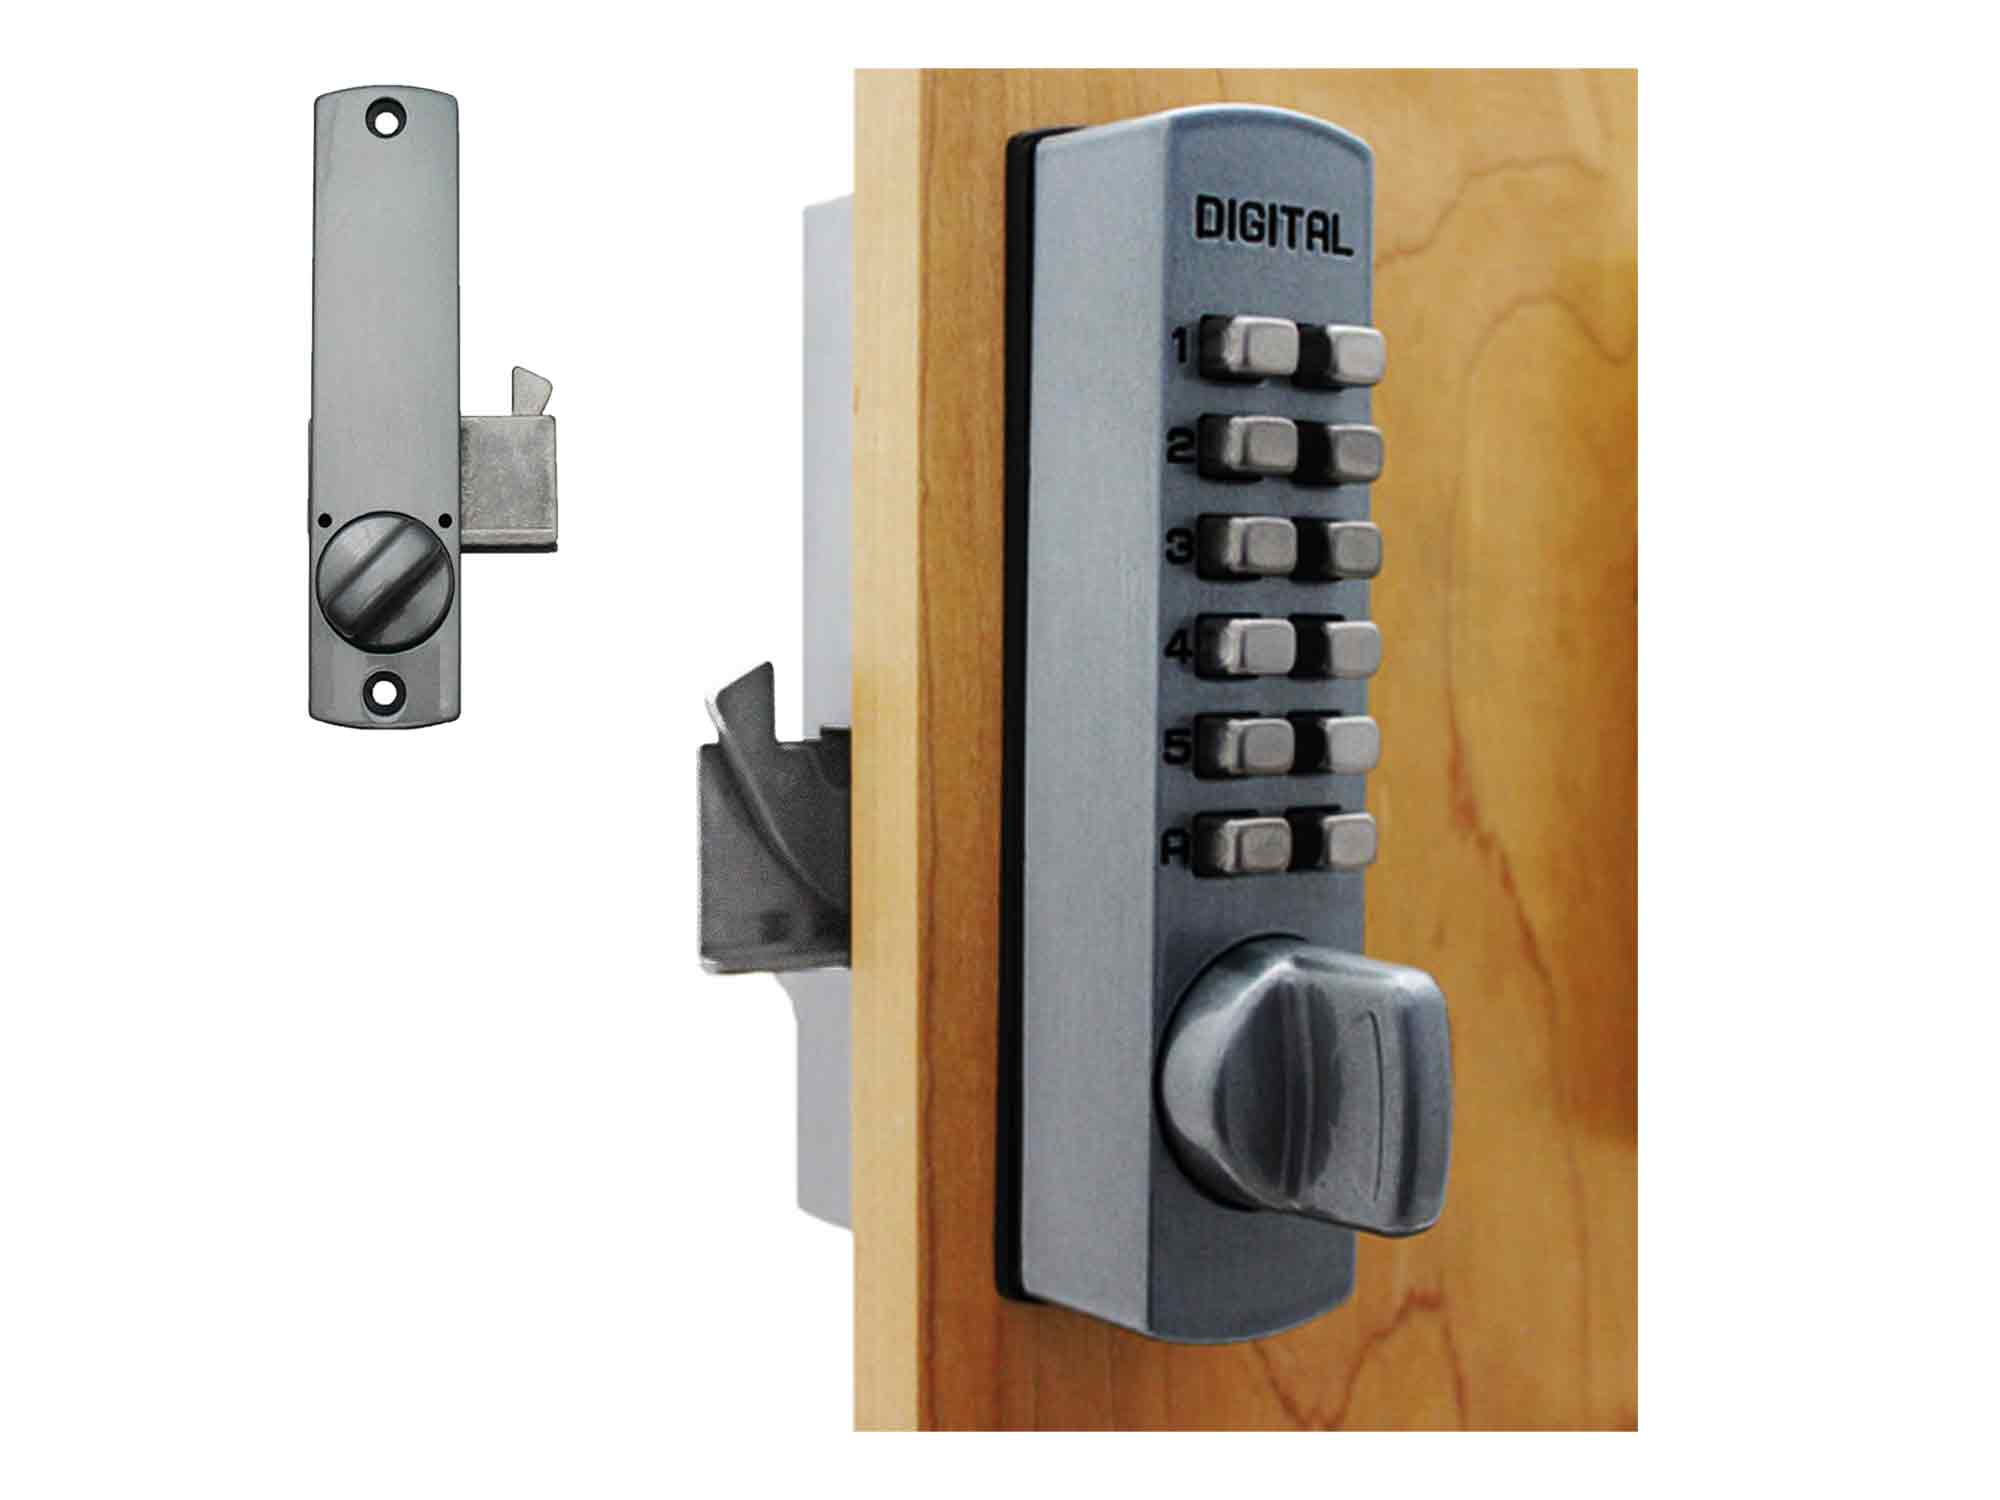 Lockey C150 Surface-Mount Cabinet Hookbolt Keypad Lock - Click Image to Close